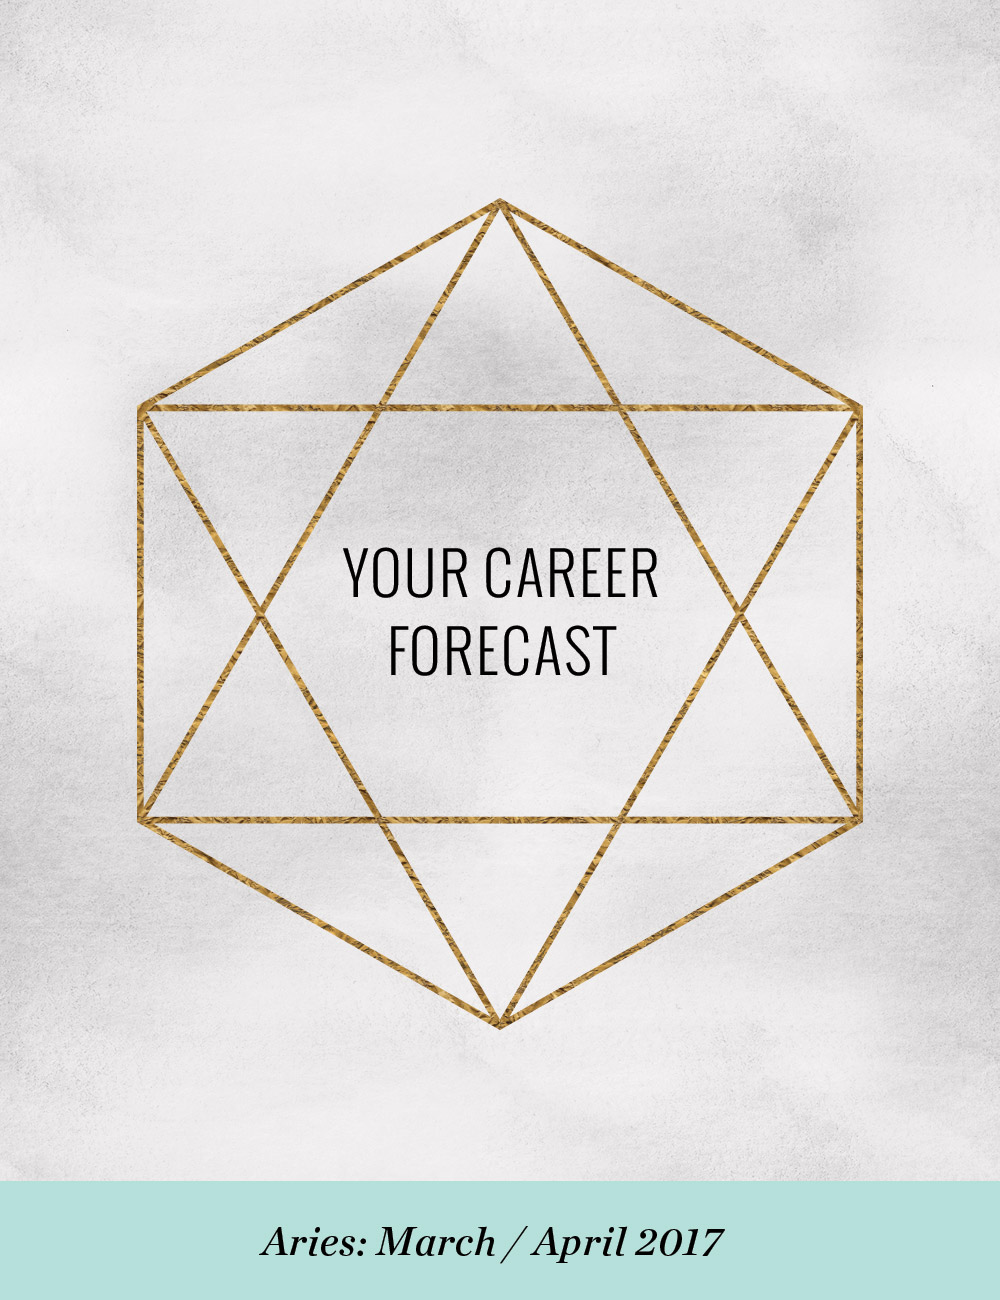 ELLEN_FONDILER_CAREER_FORECAST_ARIES_2017